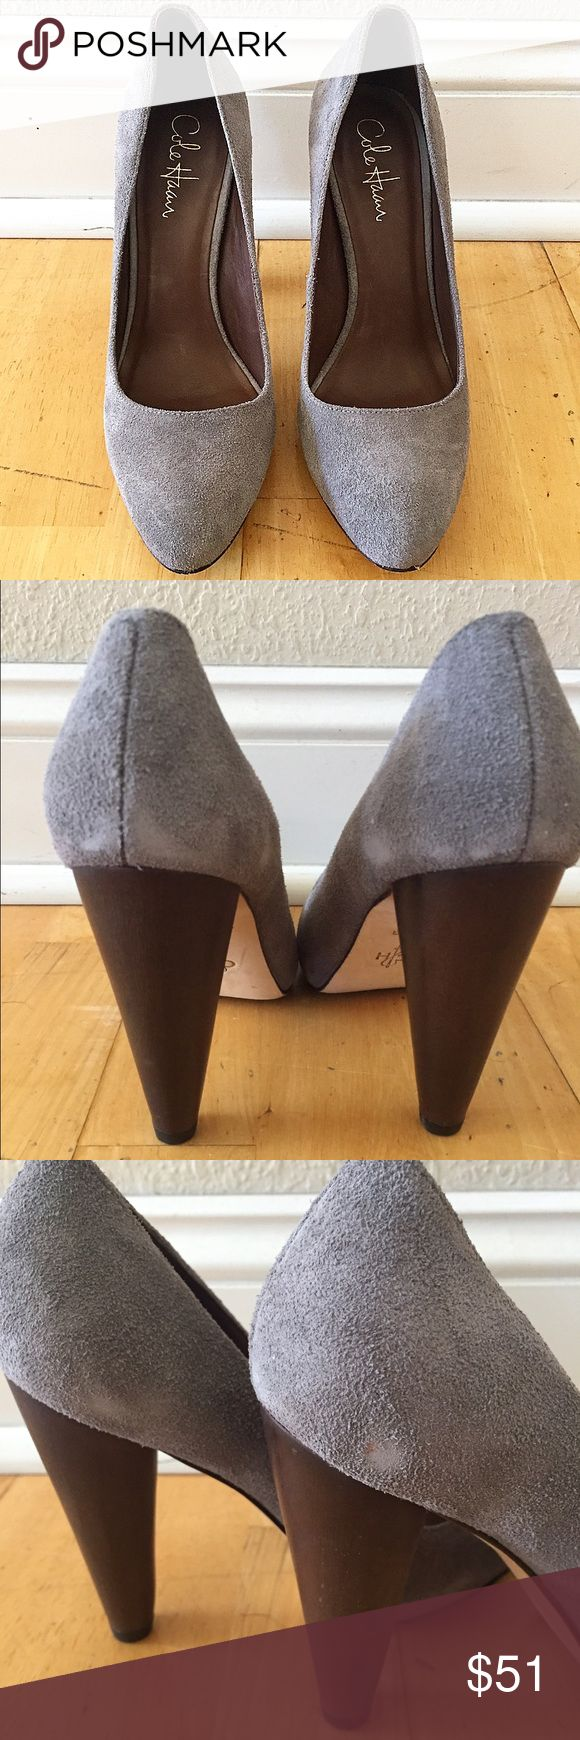 Cole Haan Grey Suede Pumps Worn a couple of times with some scuffs. Dark wooden chunky heel. Approximately 4 inch heel height. Cole Haan Shoes Heels